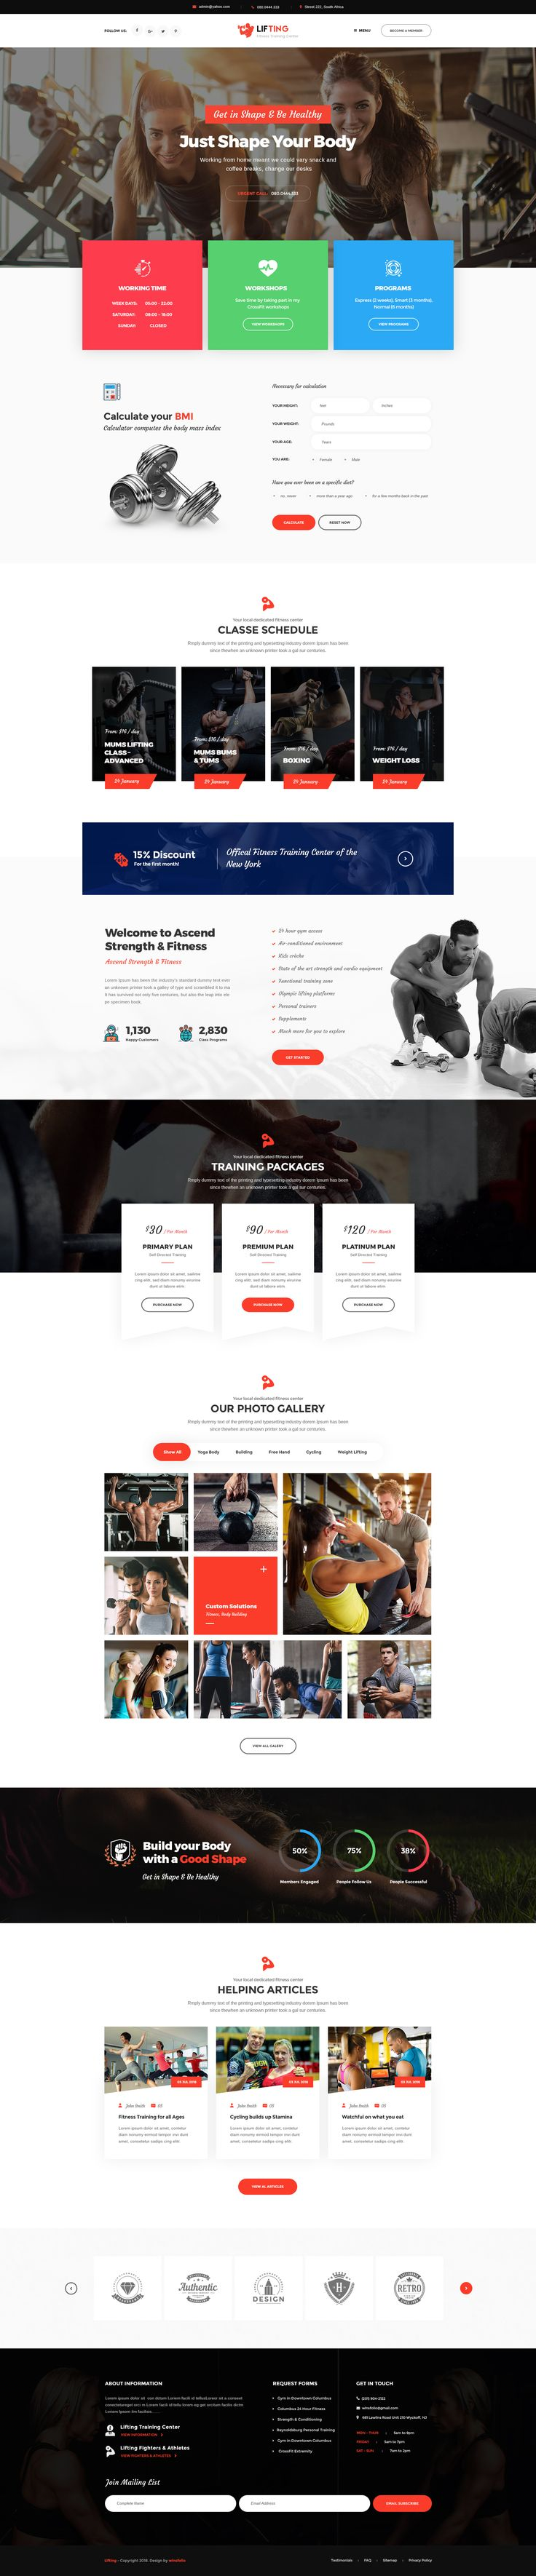 Lifting is a PSD template created especially for Gym, Yoga, Fitness Clubs, Crossfit Boxes, Sports & Health Websites, Personal Trainer and any other sports businesses. It has 6 beautiful home pages ...